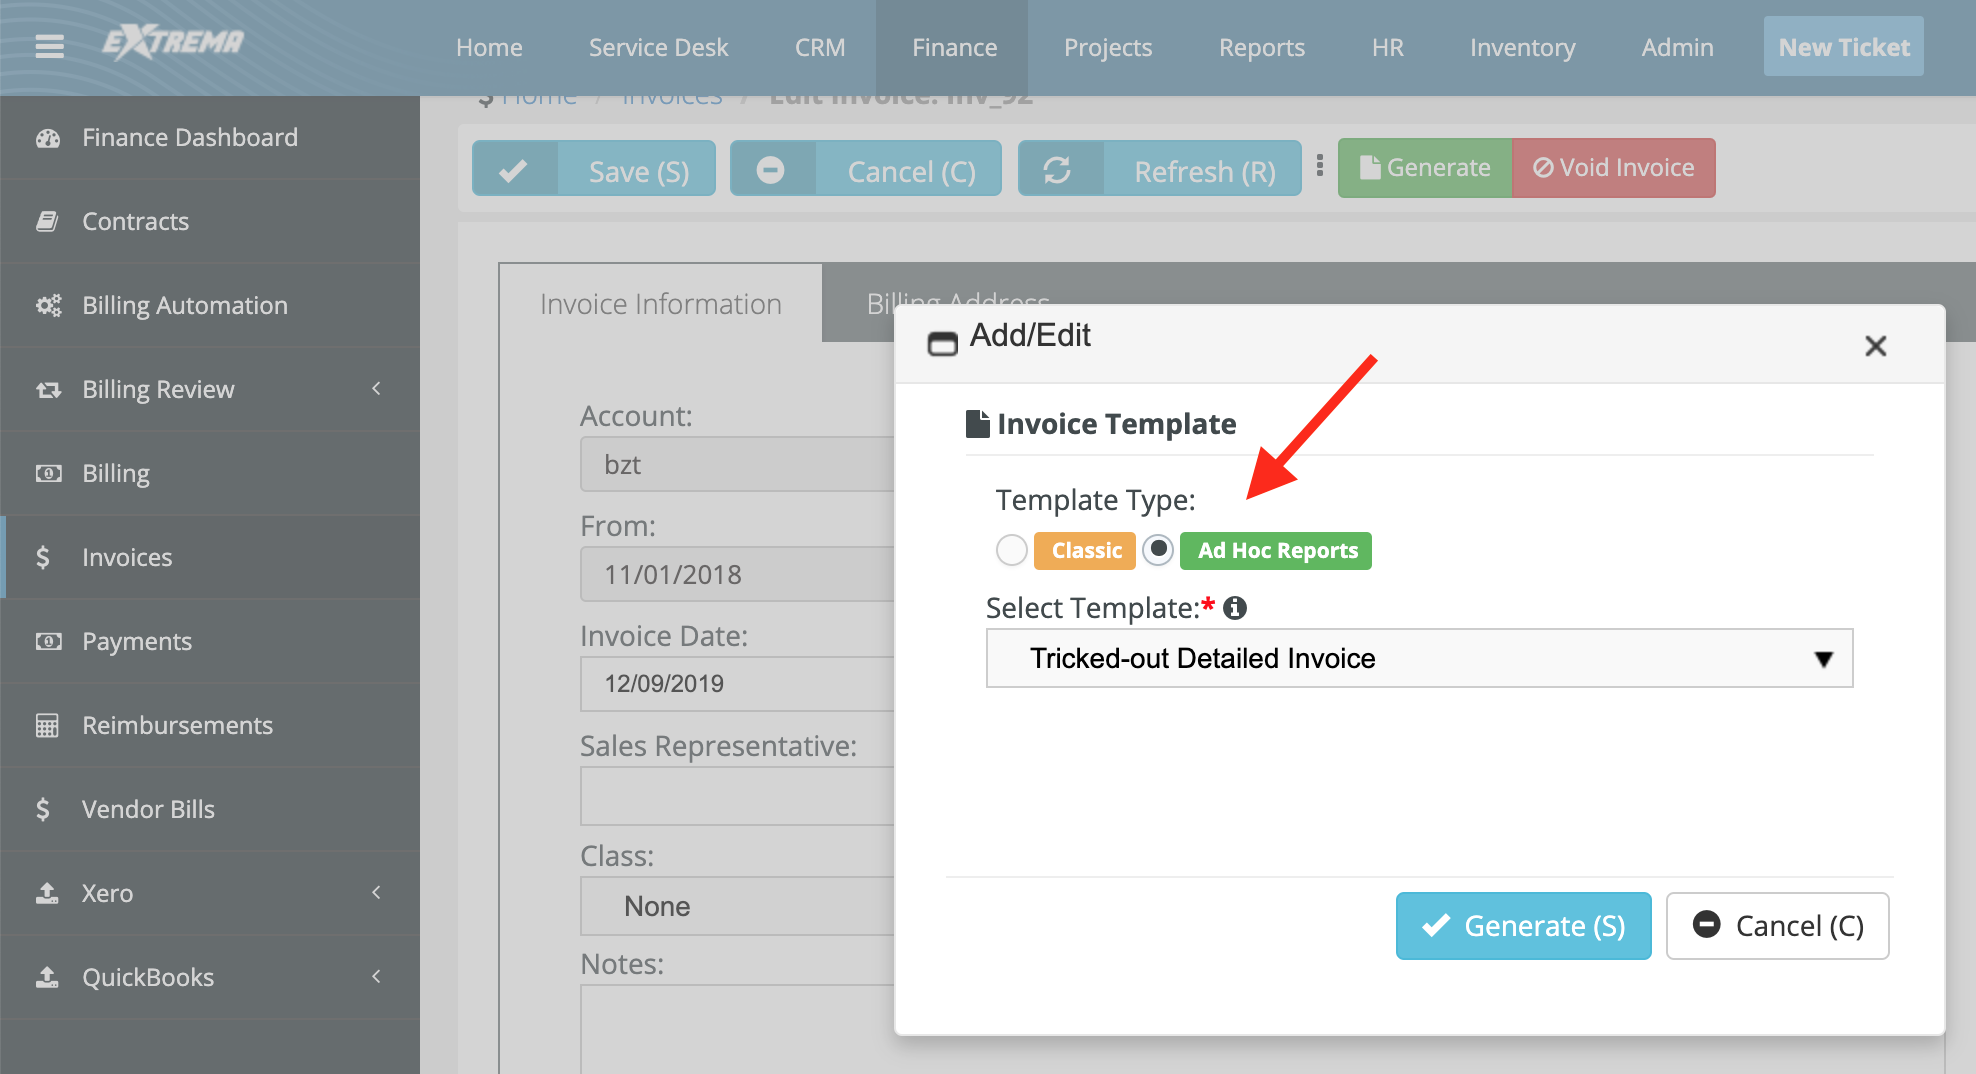 BMS_v4.0.29_-_Inv_Template_-_Generate_Invoice.png